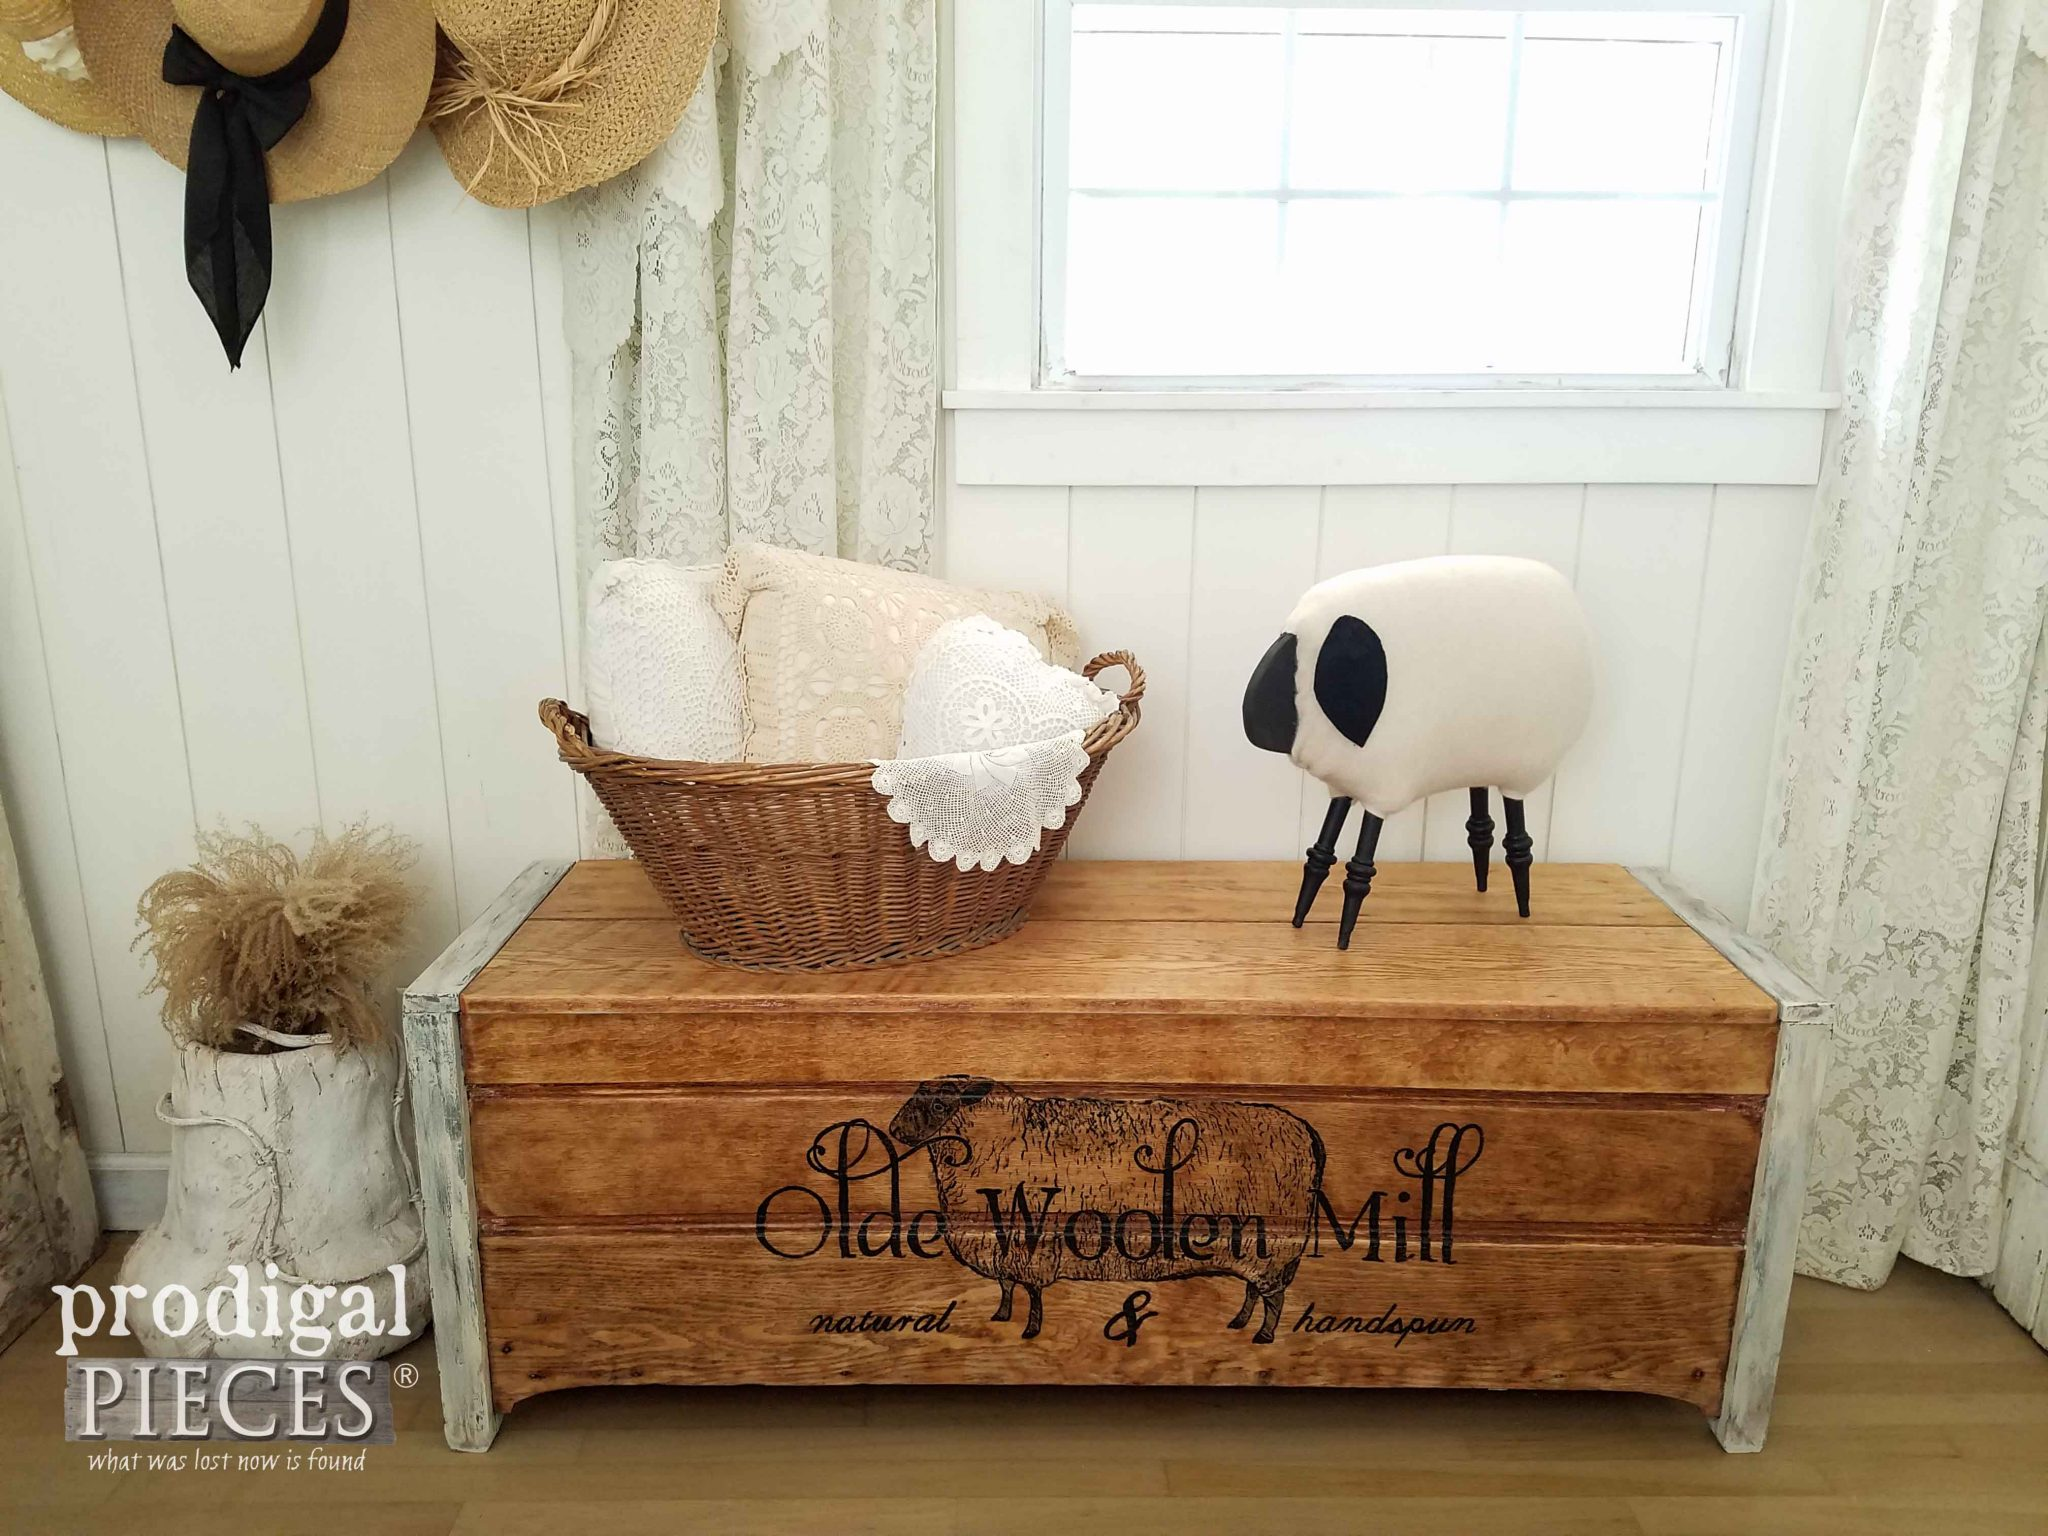 Olde Woolen Mill Farmhouse Blanket Chest by Prodigal Pieces | prodigalpieces.com